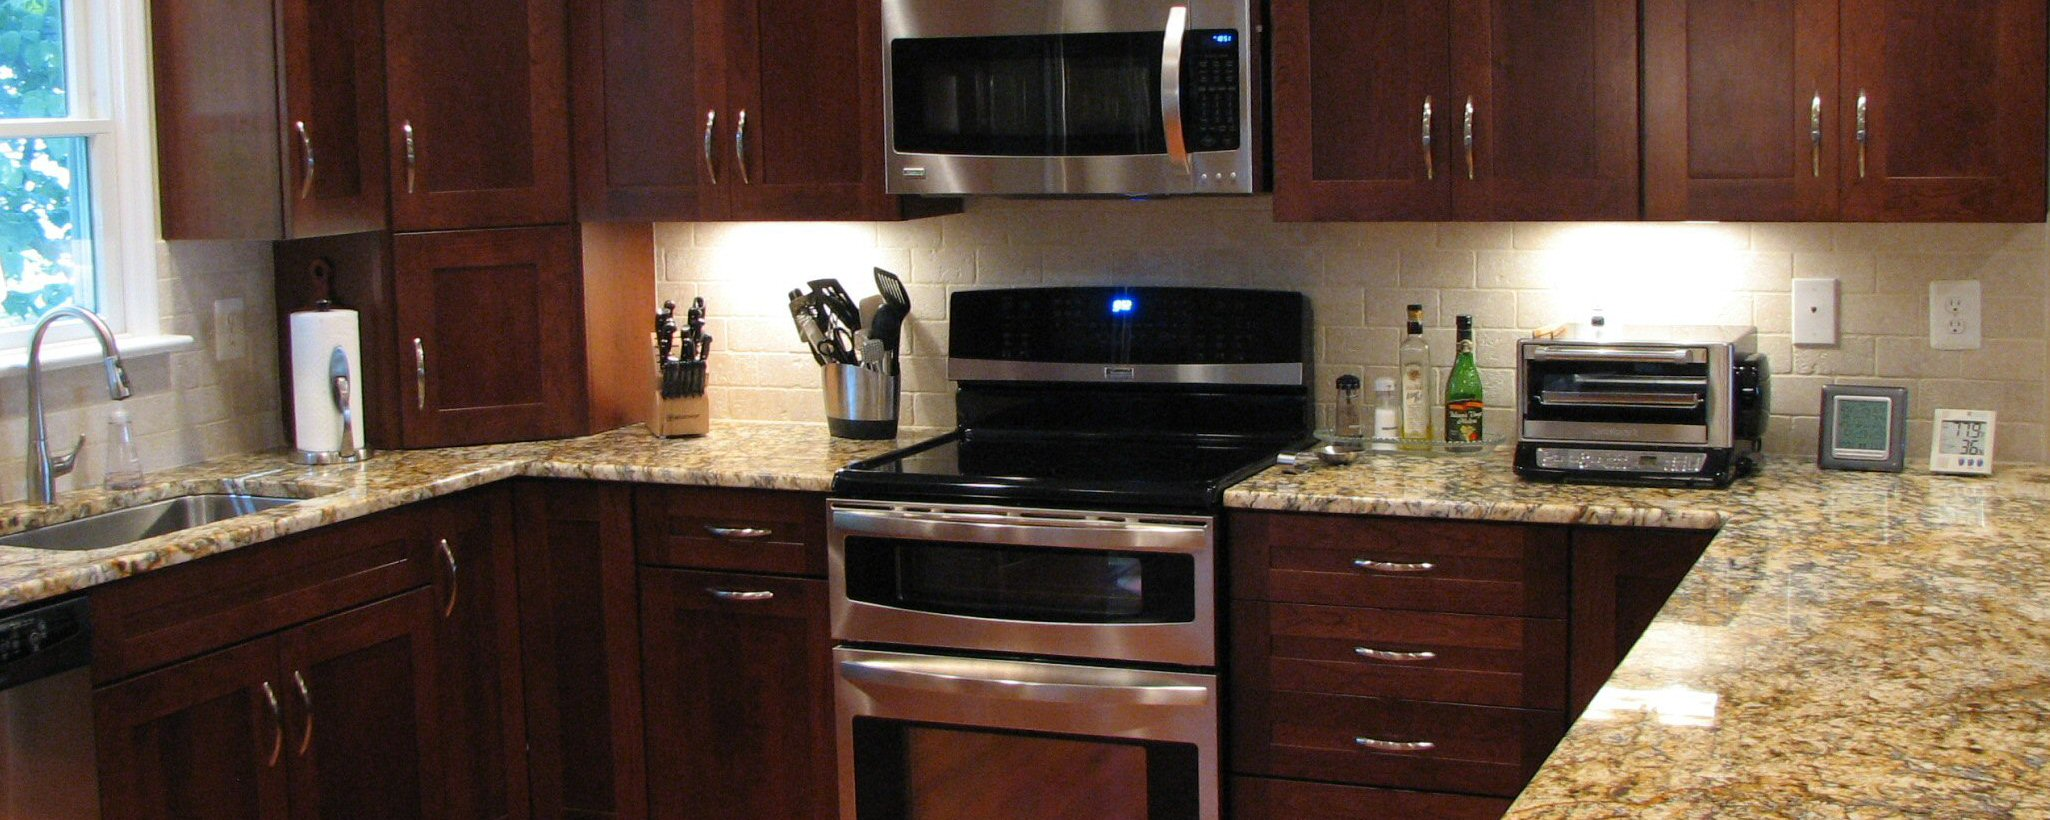 Average Cost Of Laminate Countertops How Luxury Selections Affect Your Kitchen Remodel Price